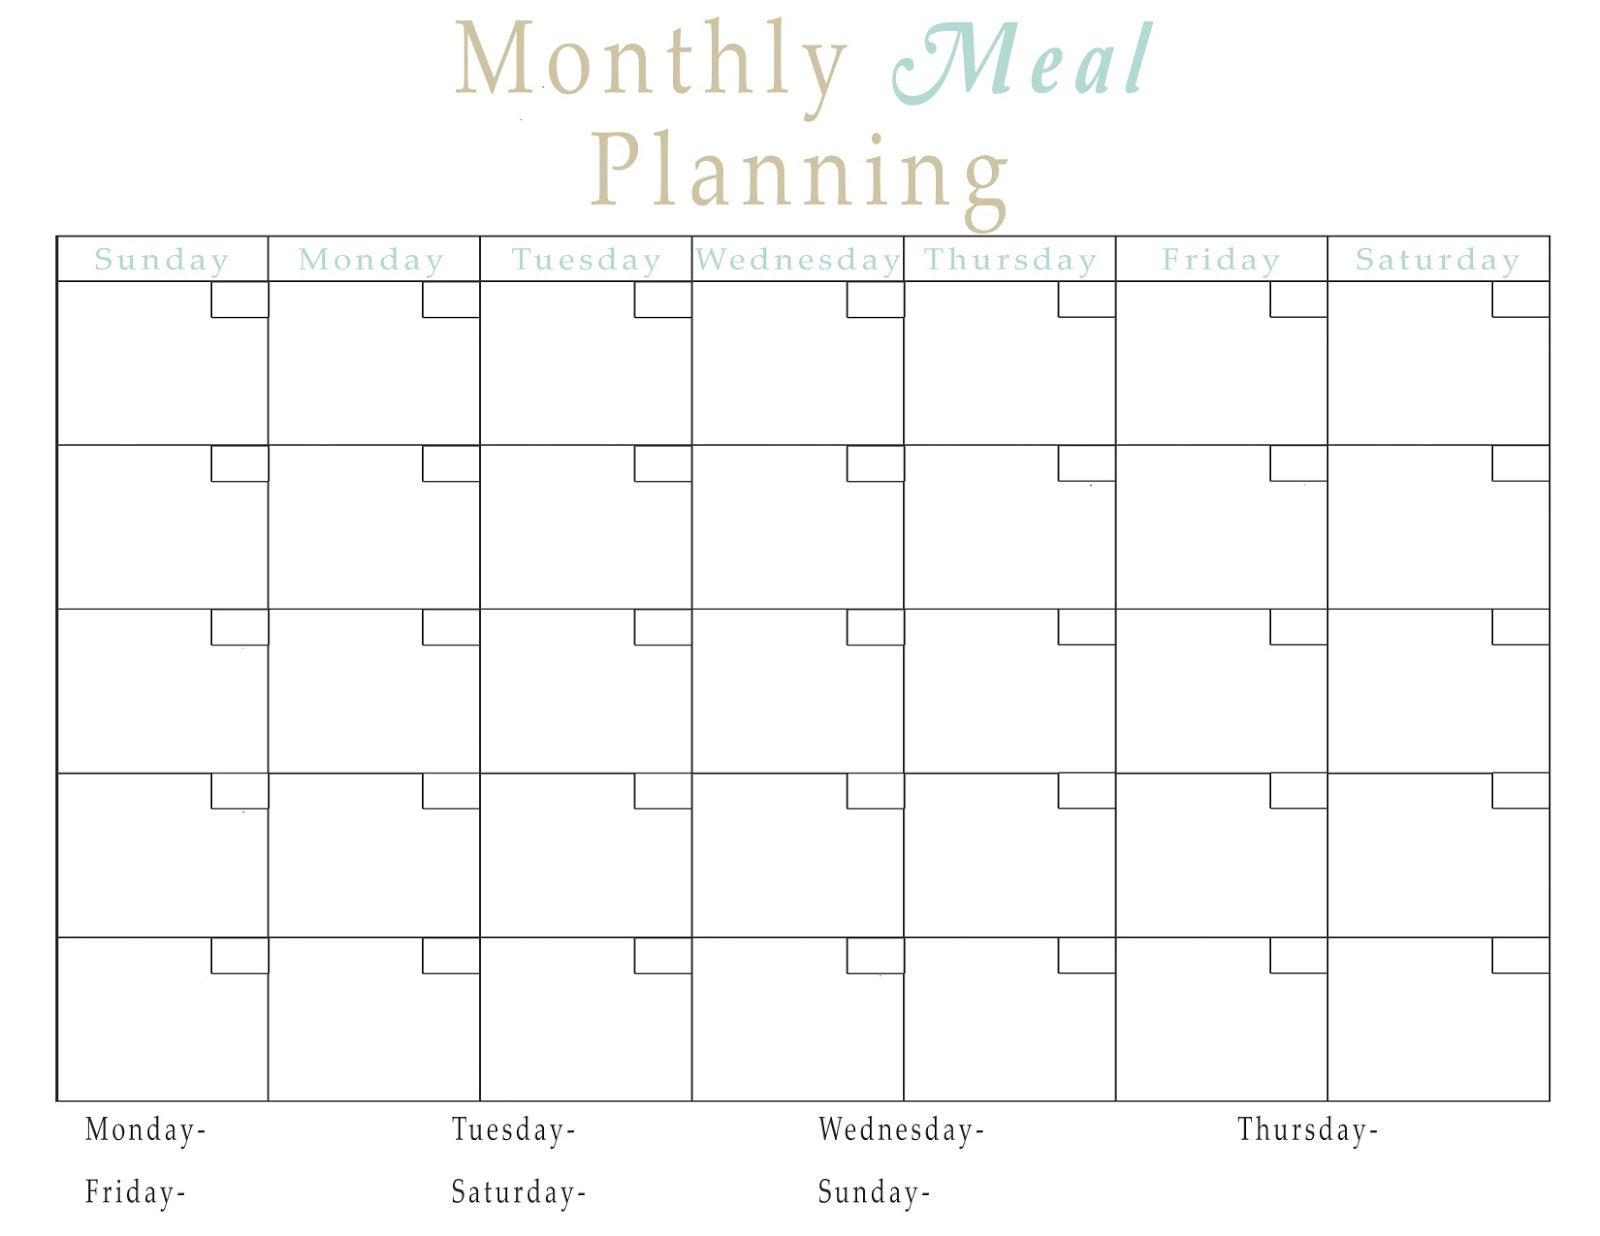 Montly meal plan NO logo